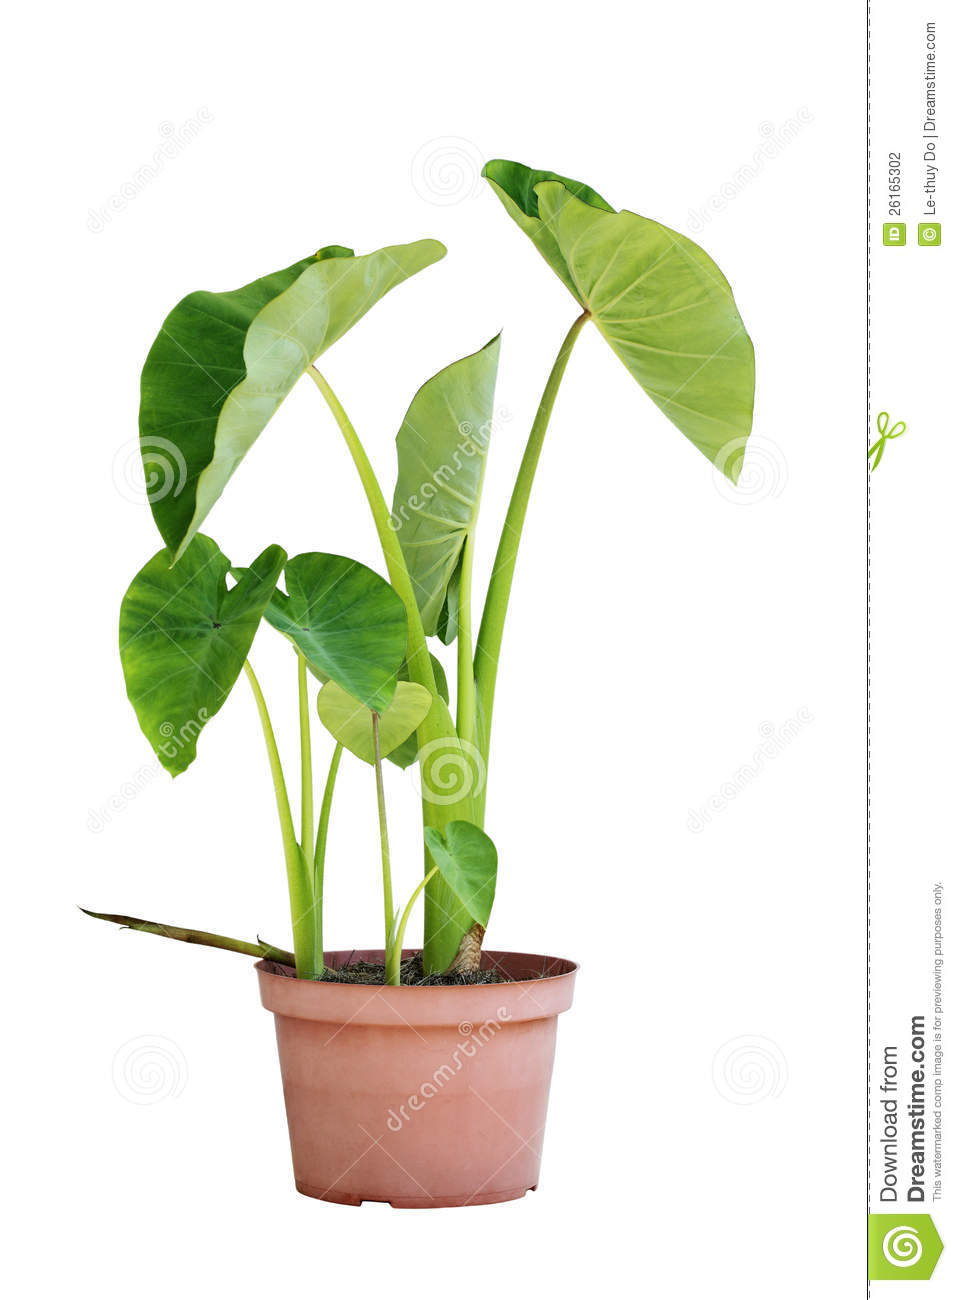 11 125 Elephant Ear Photos Free Royalty Free Stock Photos From Dreamstime Use these free elephant ear png #164485 for your personal projects or designs. dreamstime com